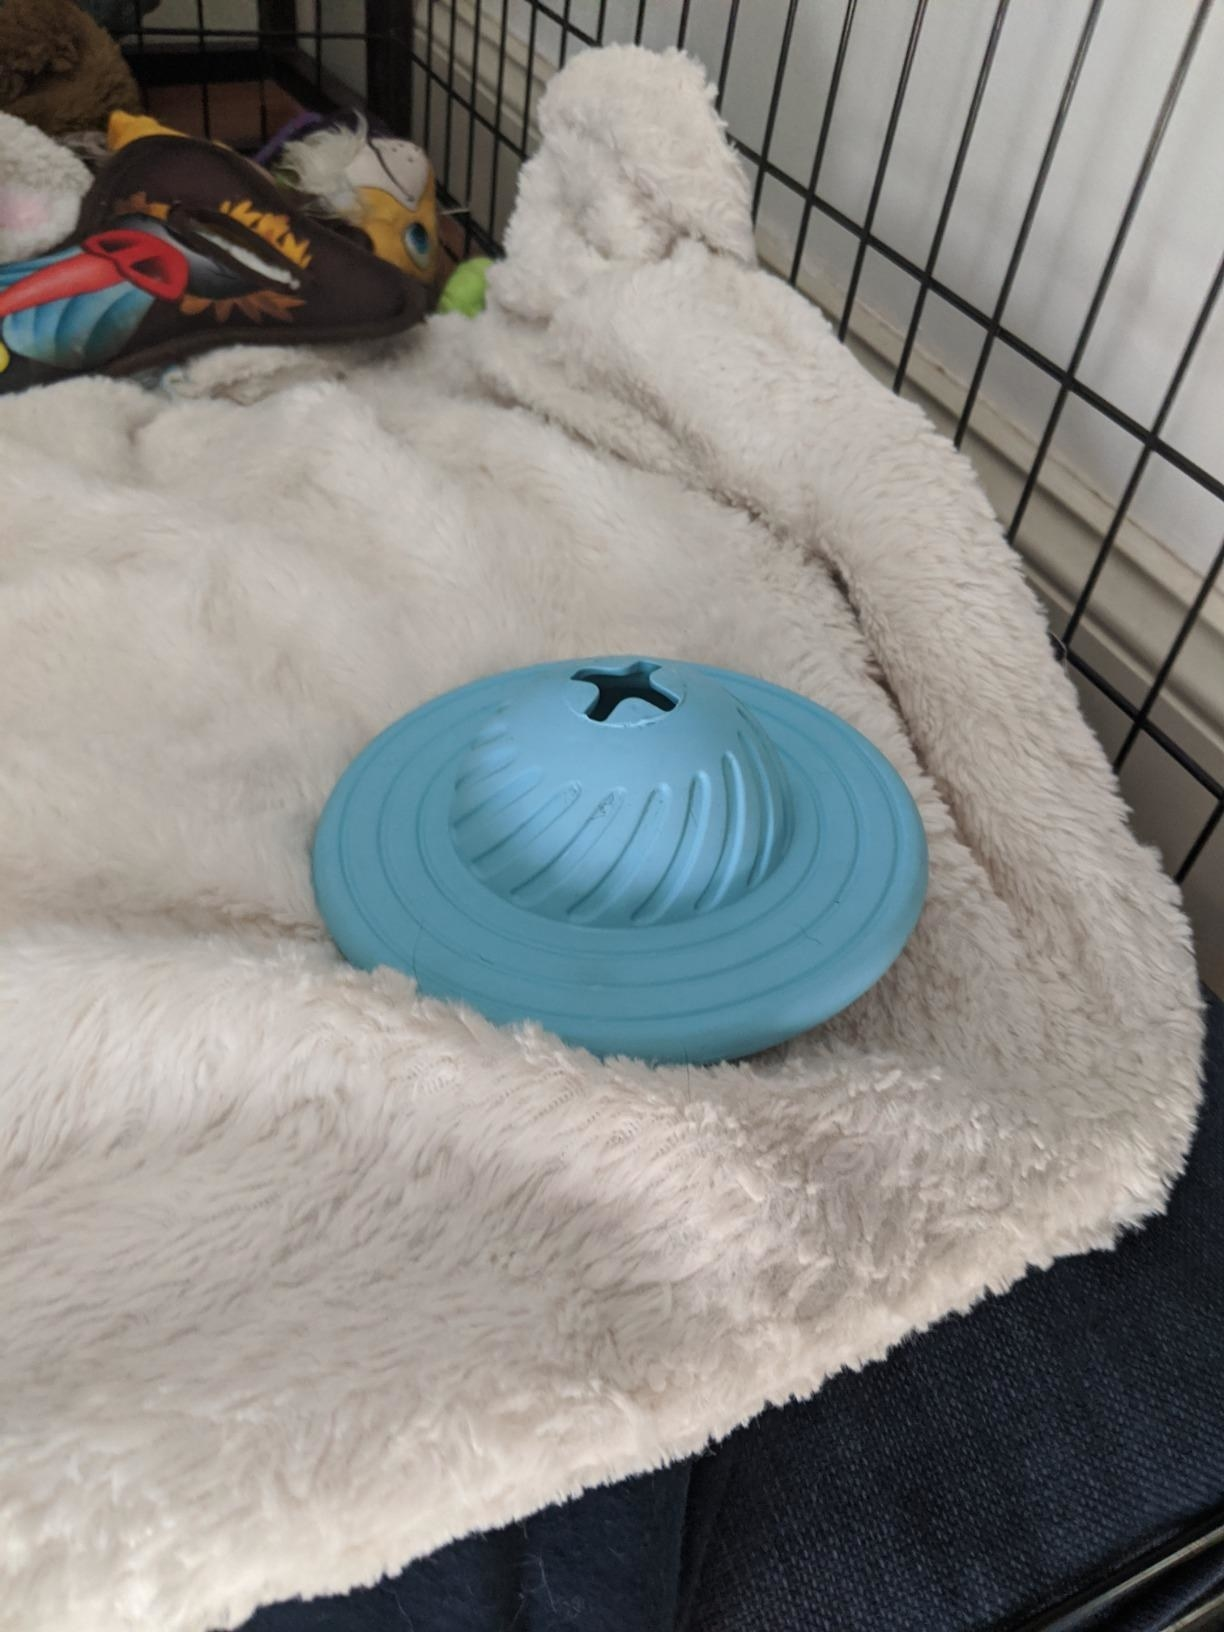 The toy in blue, flying saucer-shaped with a cross-shaped opening for treats to be dispensed through